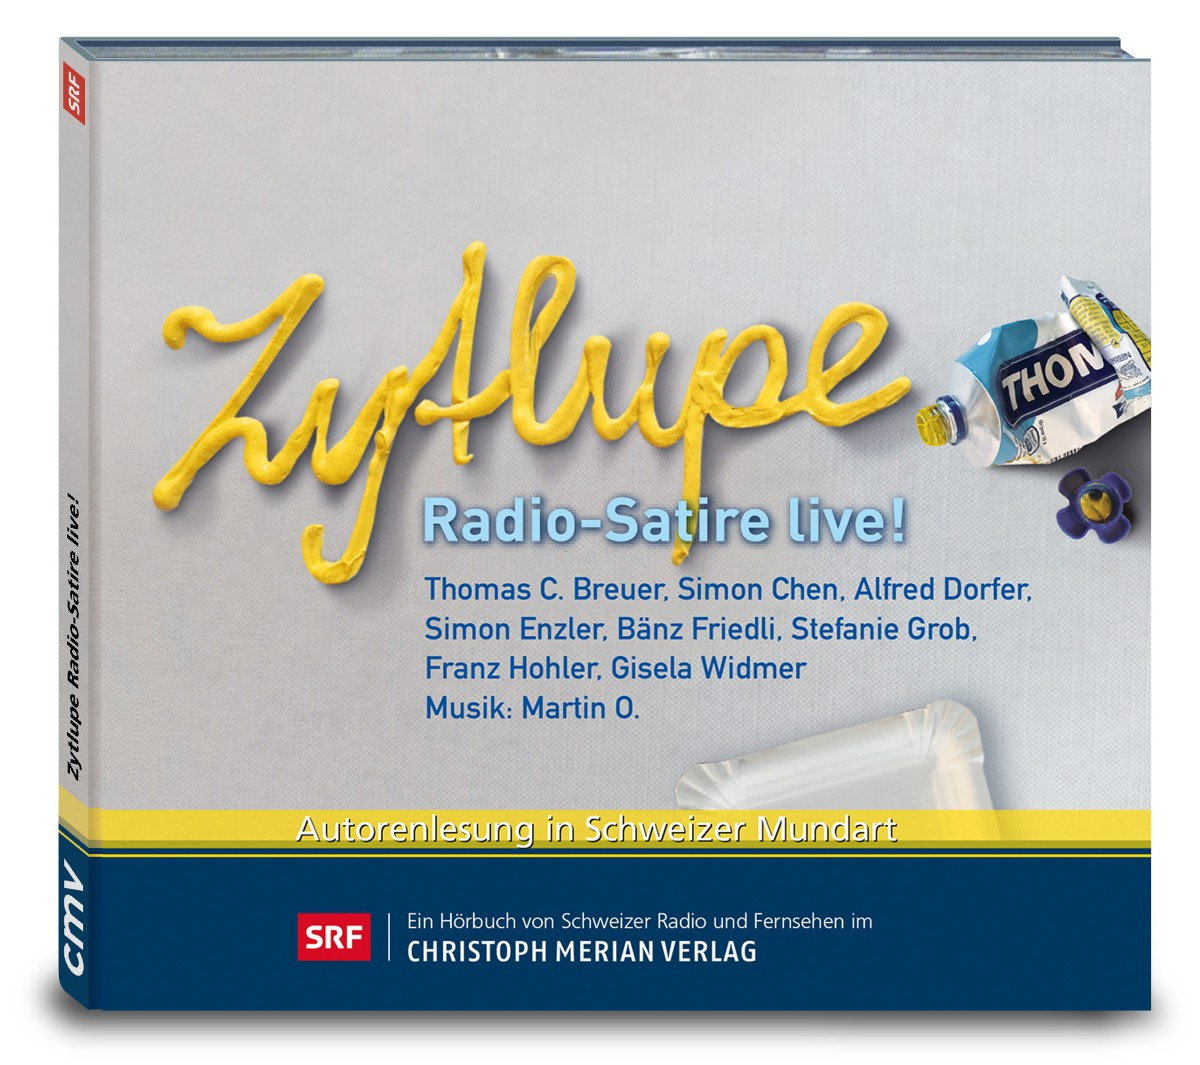 Zytlupe - Radio-Satire live!